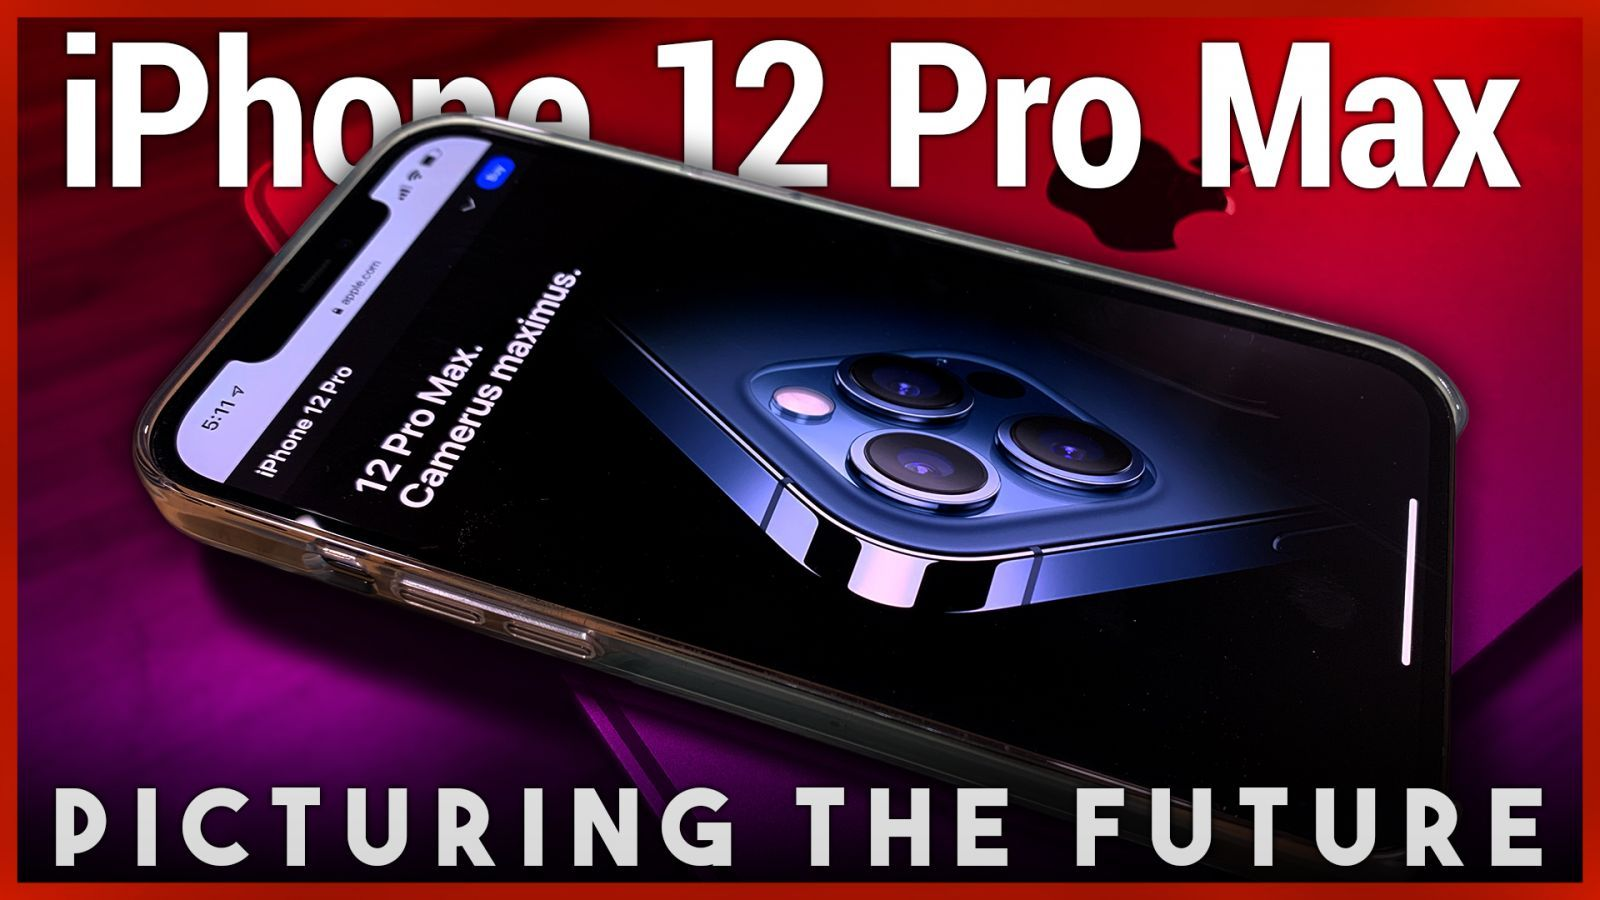 iPhone 12 Pro Max Review - Apple Still Ahead of the Curve?